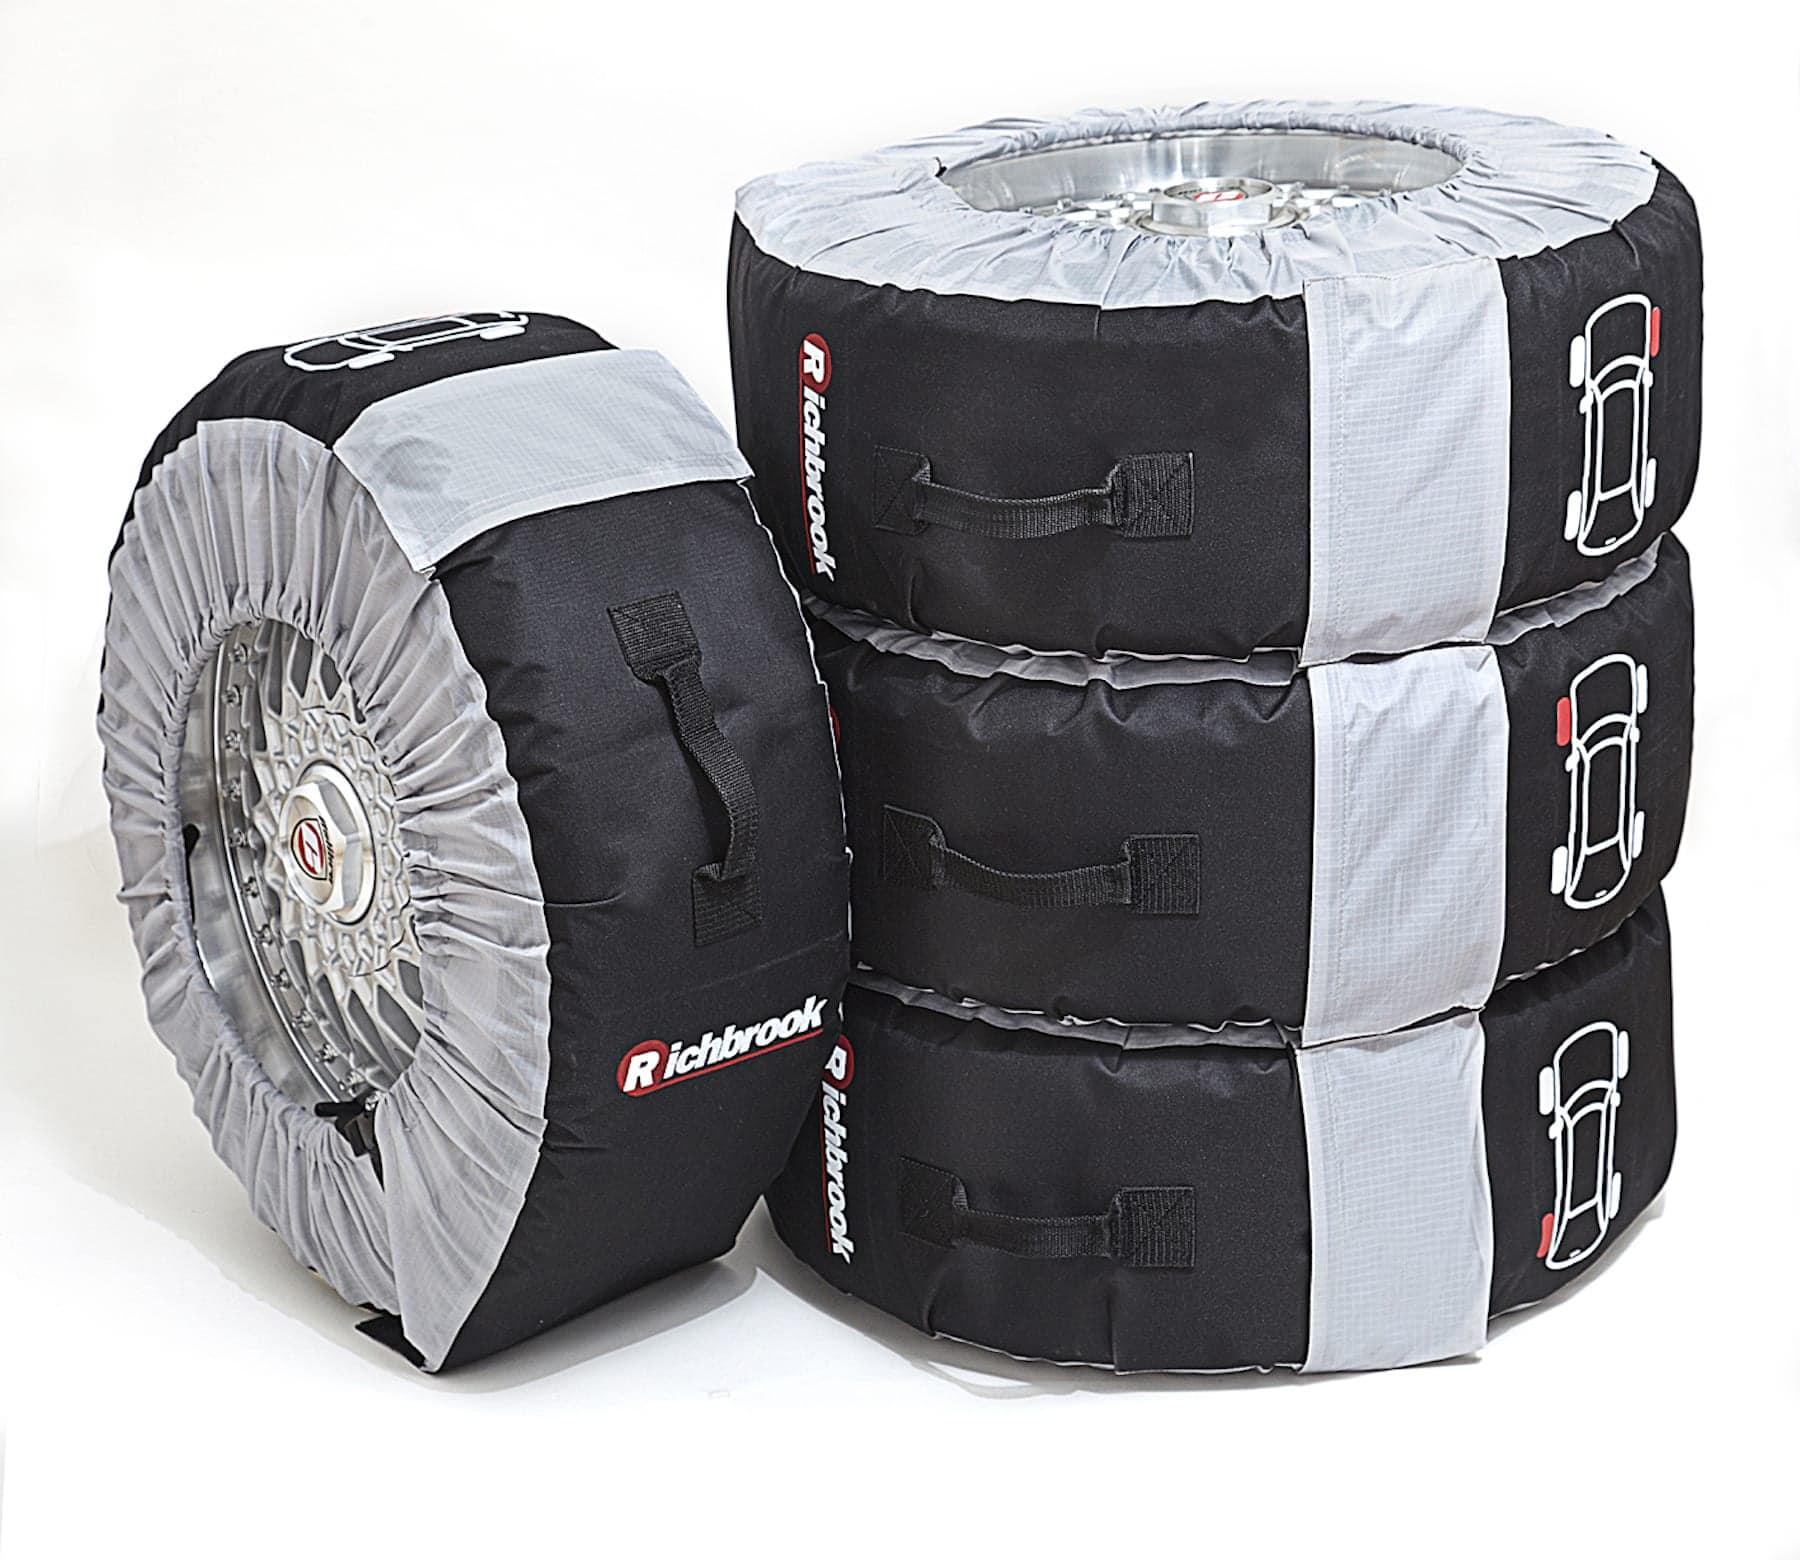 "Alloy Wheels Storage Bags Large Size fits 18"" to 22"" wheels - Set of 4 with zip-up case"